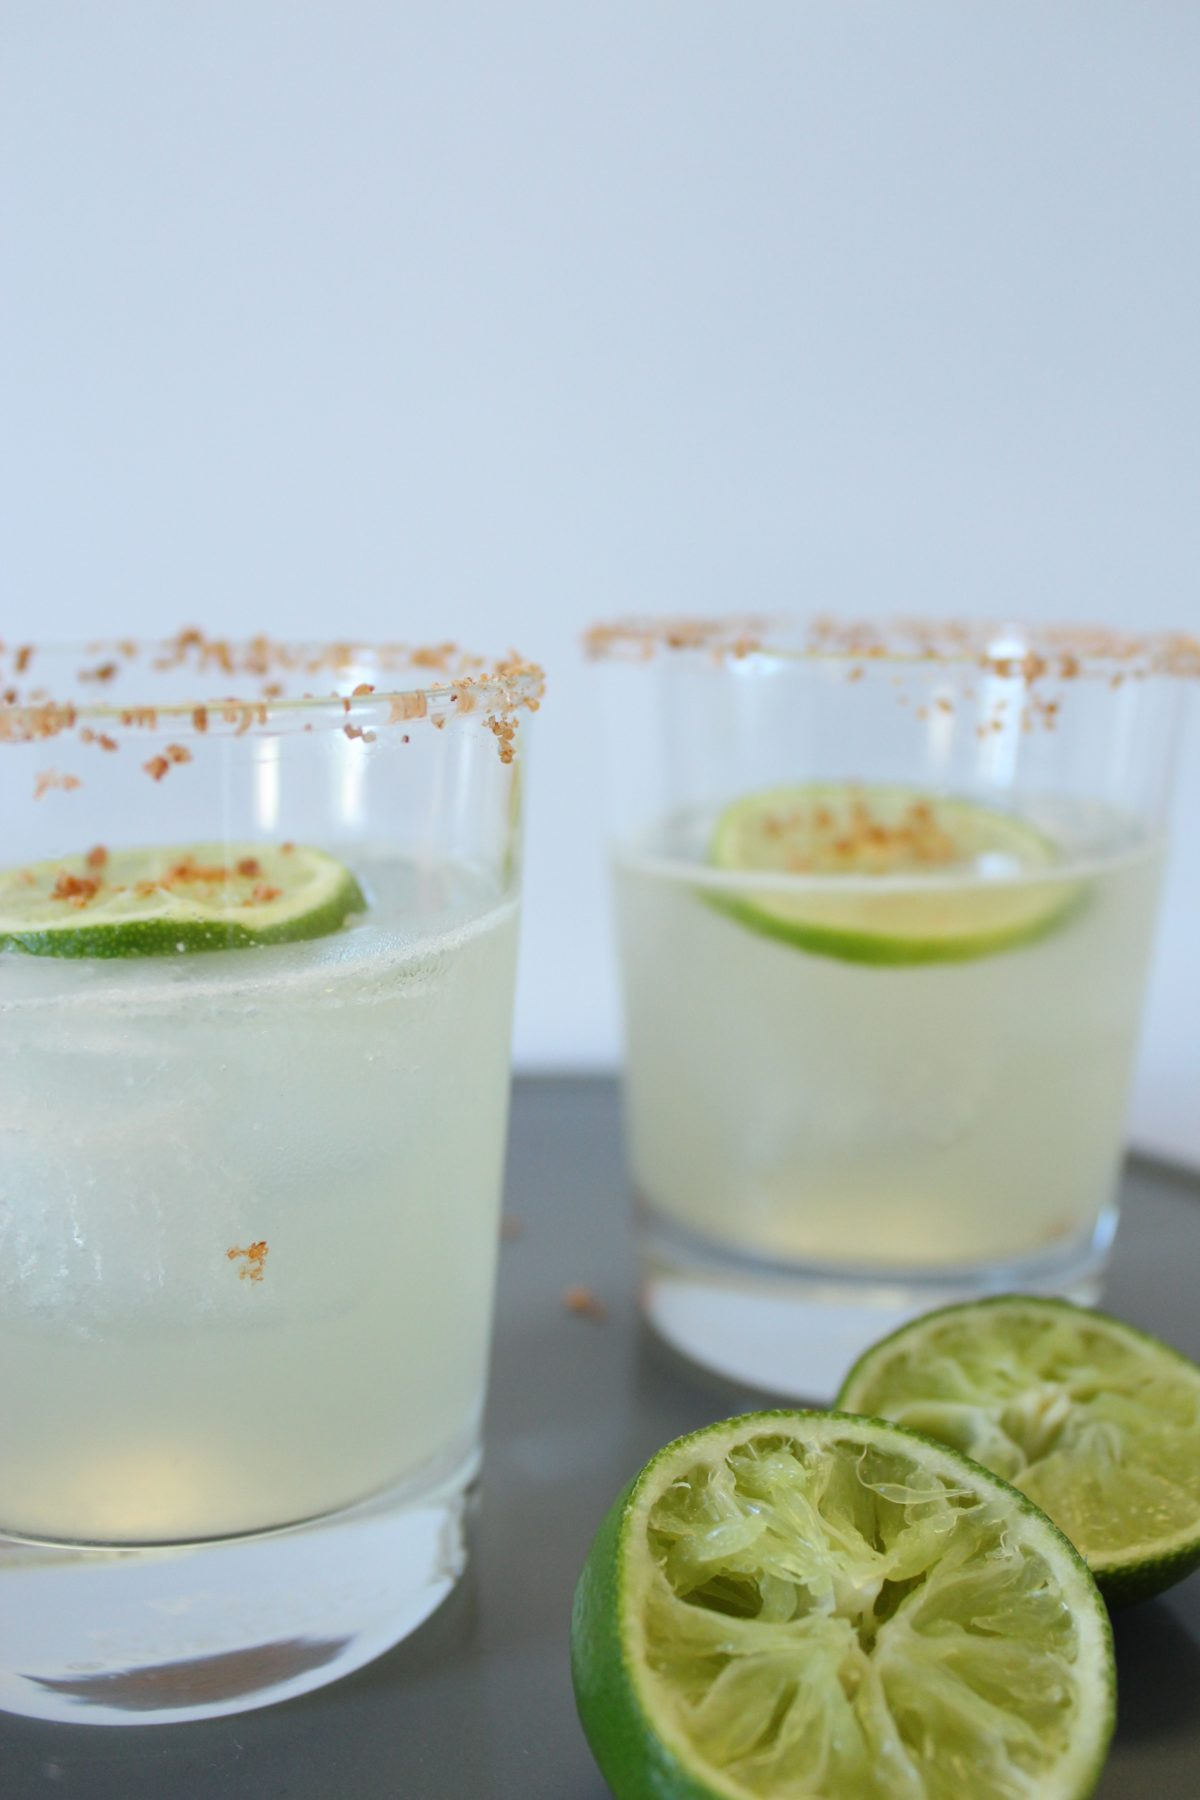 Margaritas shouldn't be overly complicated. Try this take on a classic margarita recipe.